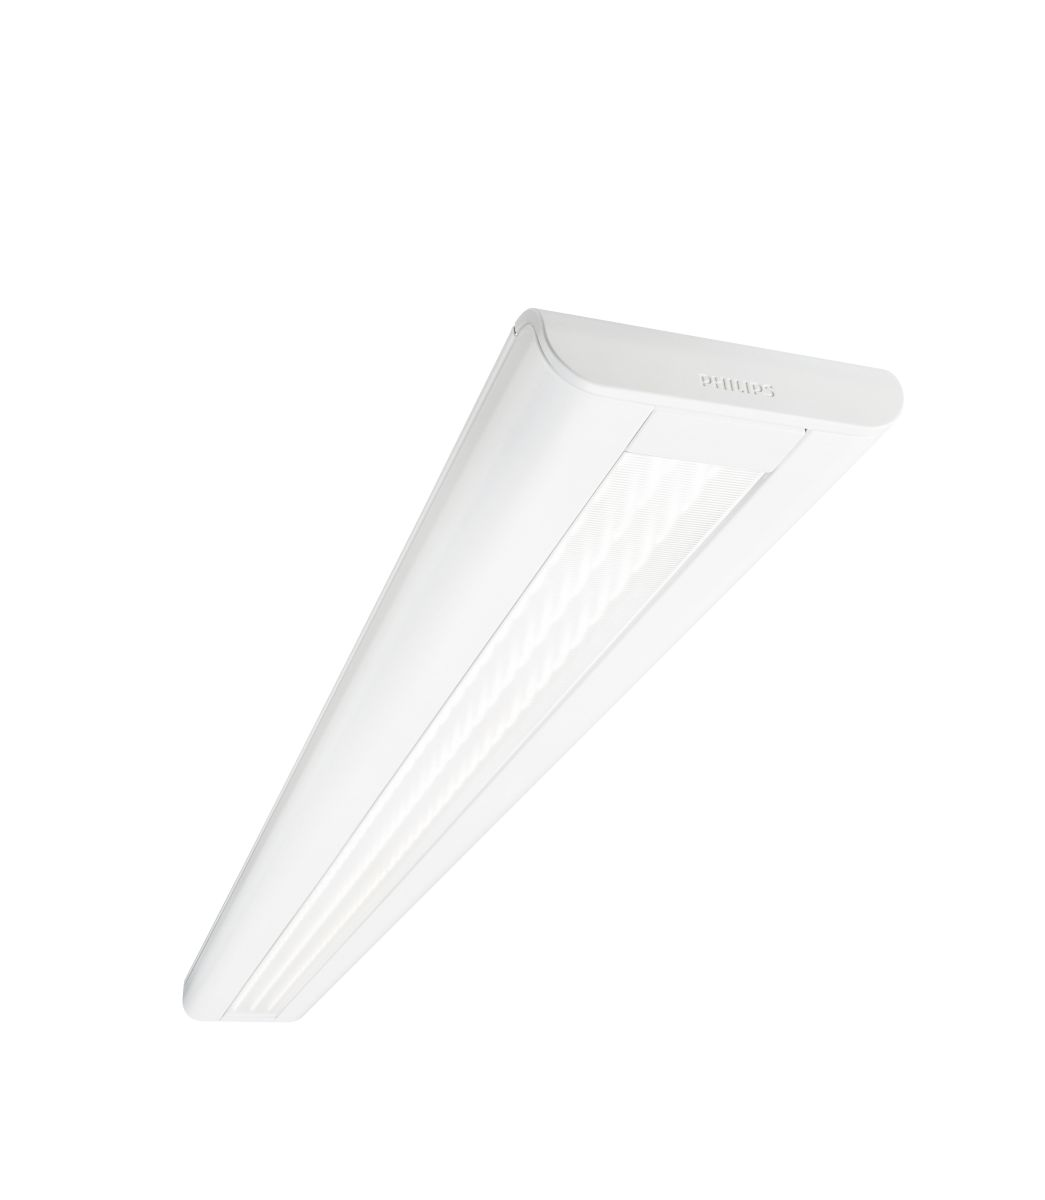 SmartForm LED BPS460